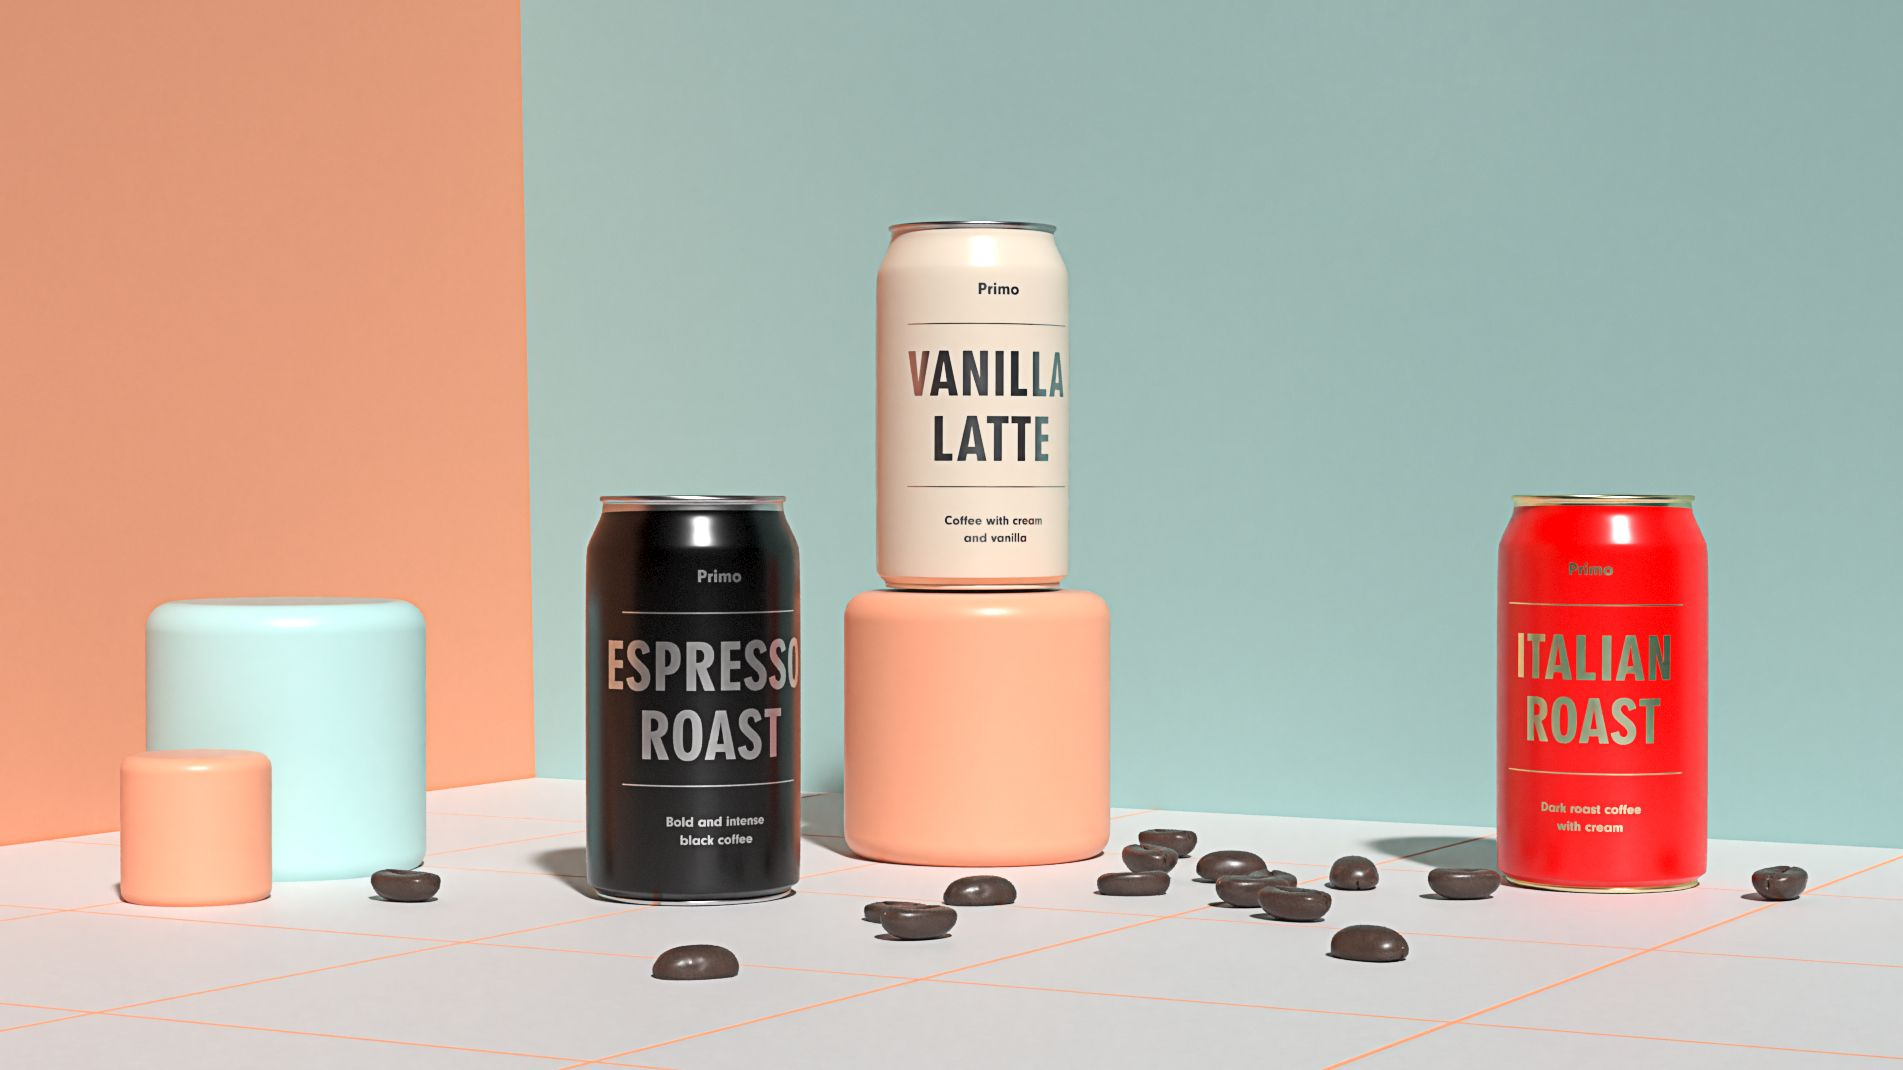 3D renderings of packaging design using Adobe Dimension